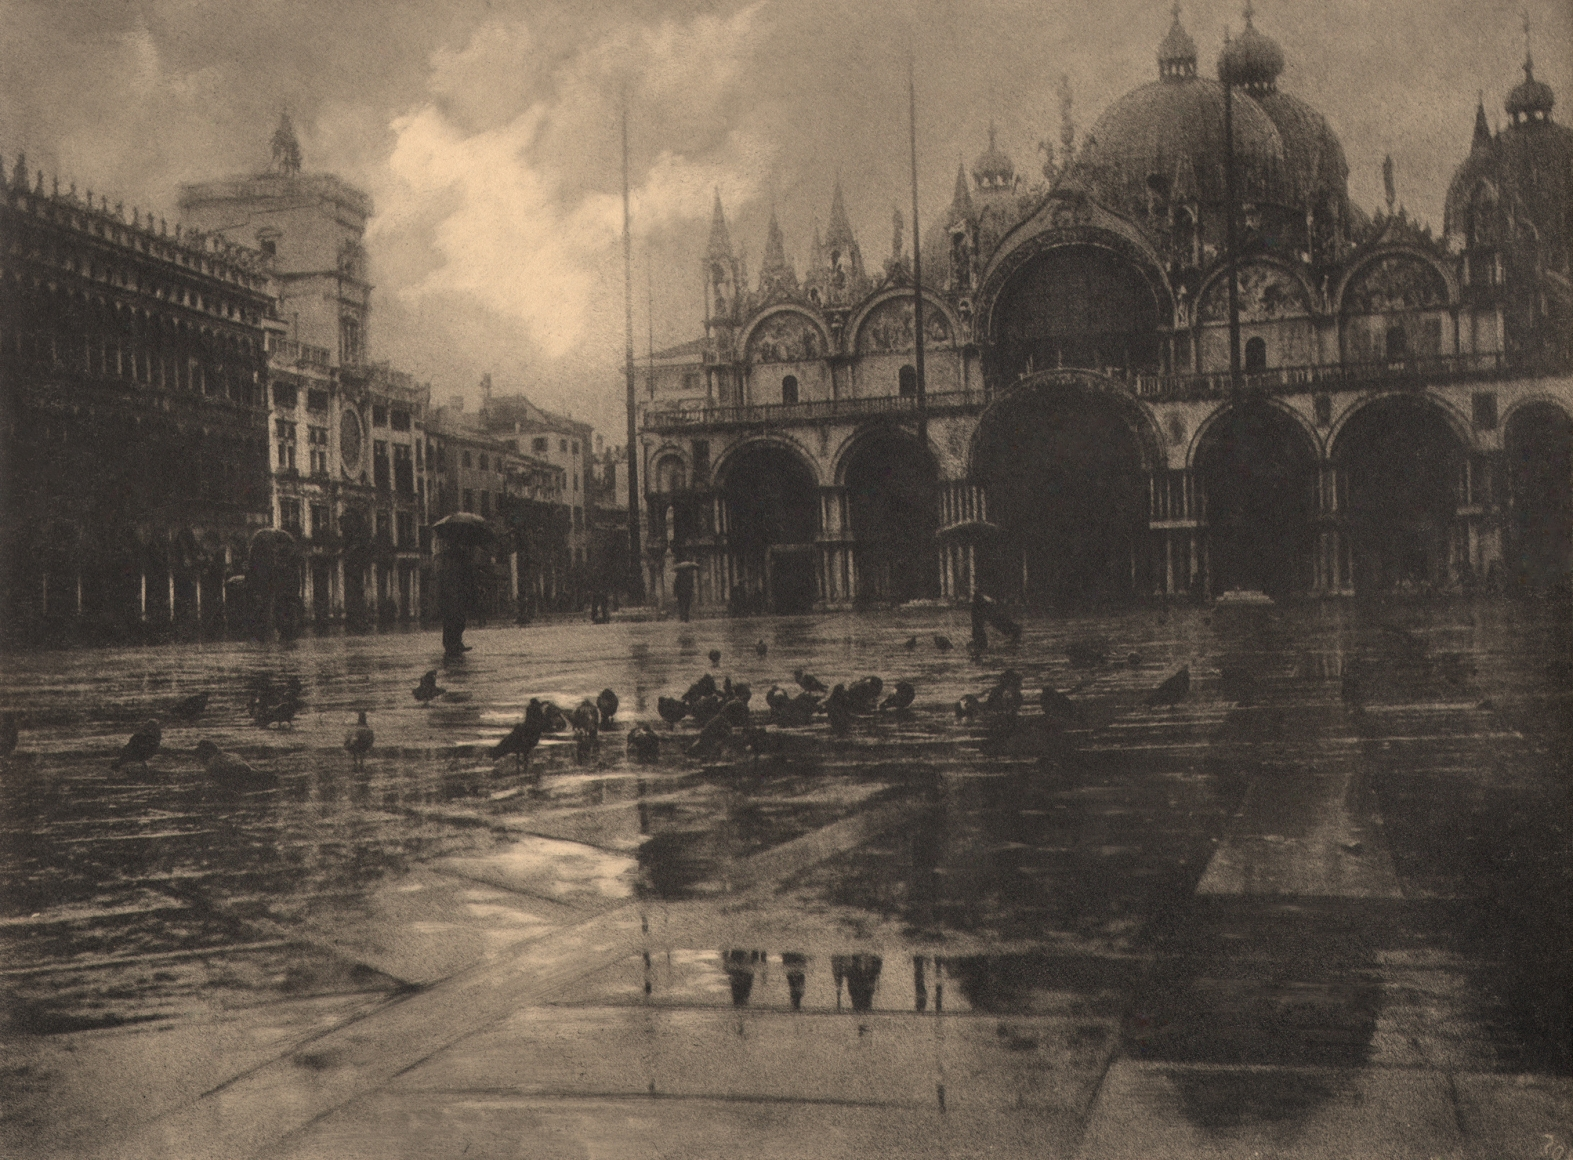 32. Léonard Misonne, Pluie Venise, 1936. Italian square with wet pavement and pigeons, ornate buildings in the background. Sepia-toned print.